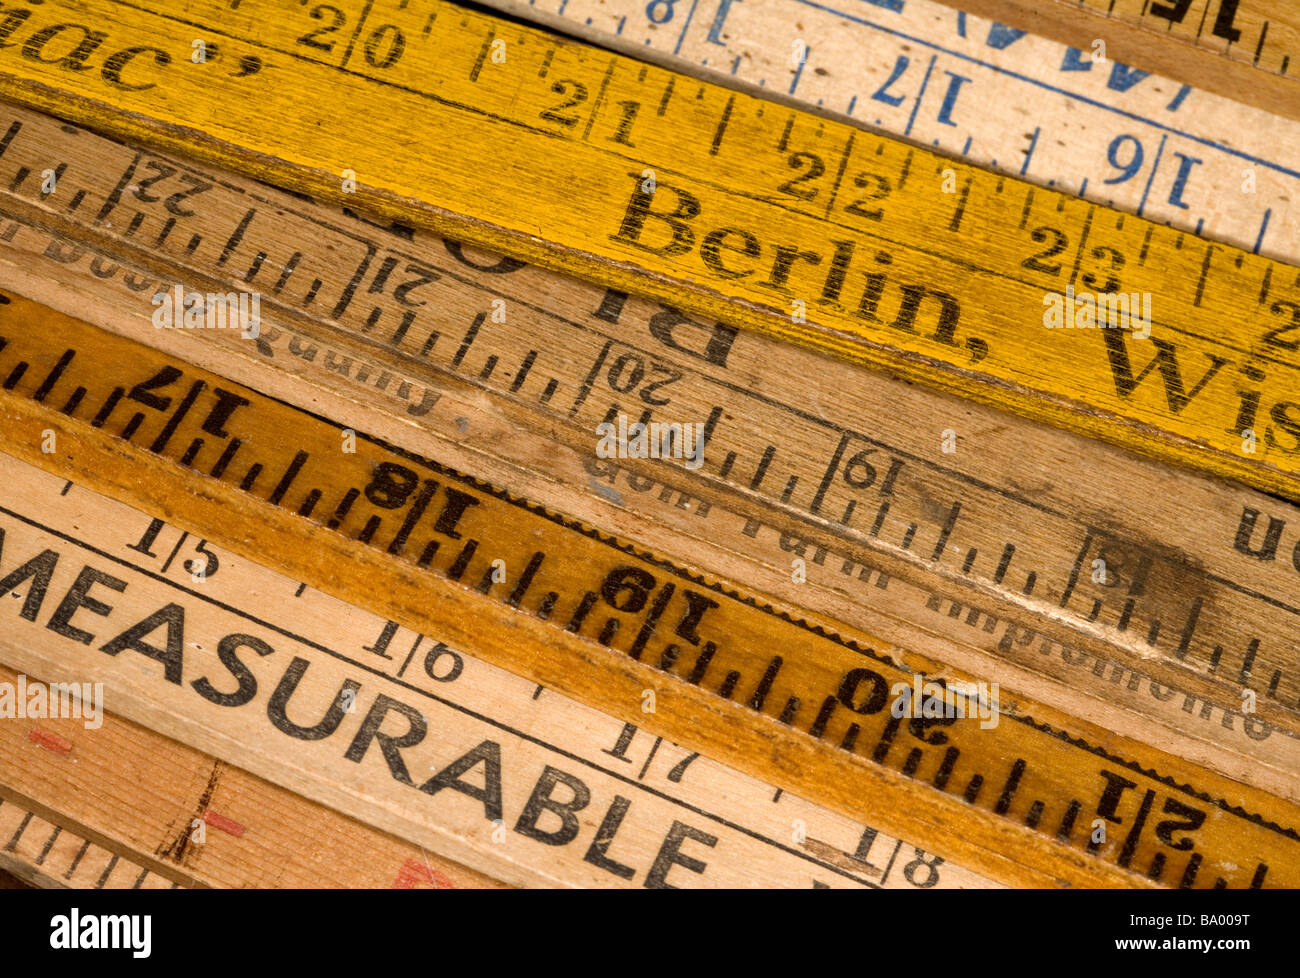 Vintage rulers stacked. - Stock Image